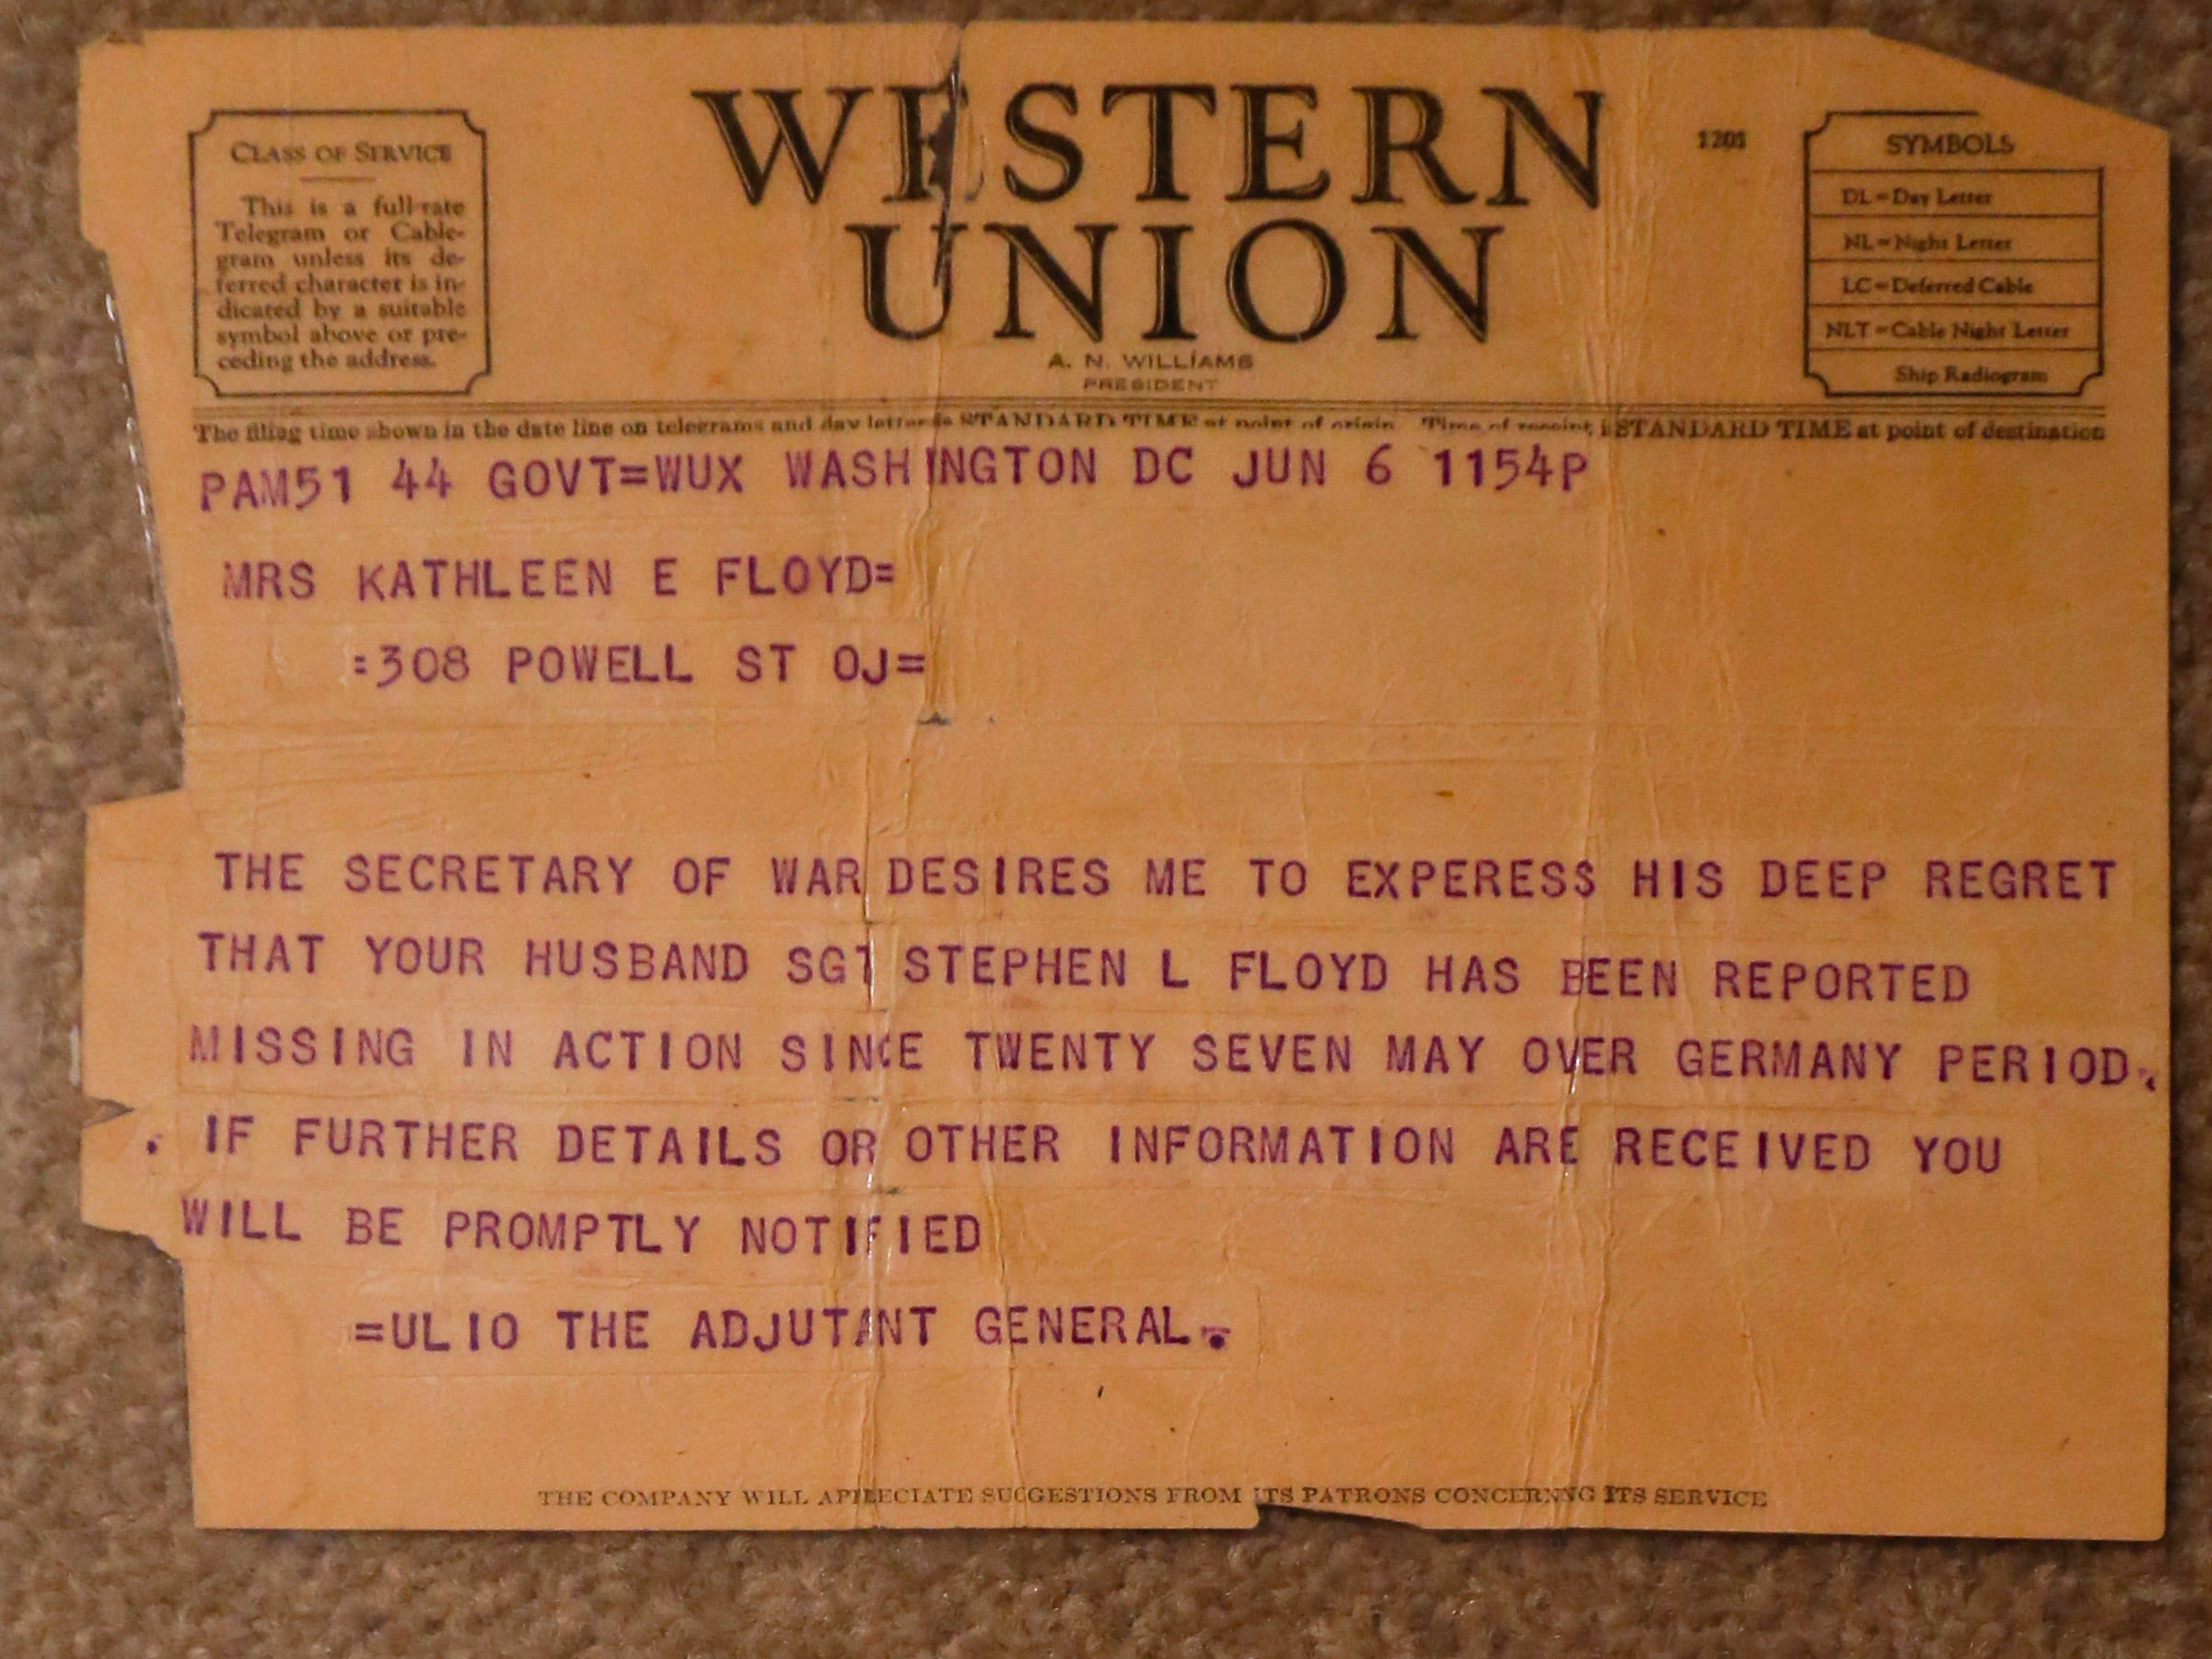 The Western Union telegrams sent to Stephen Floyd's wife from the Army informing her that he was a prisoner of war and missing in action.